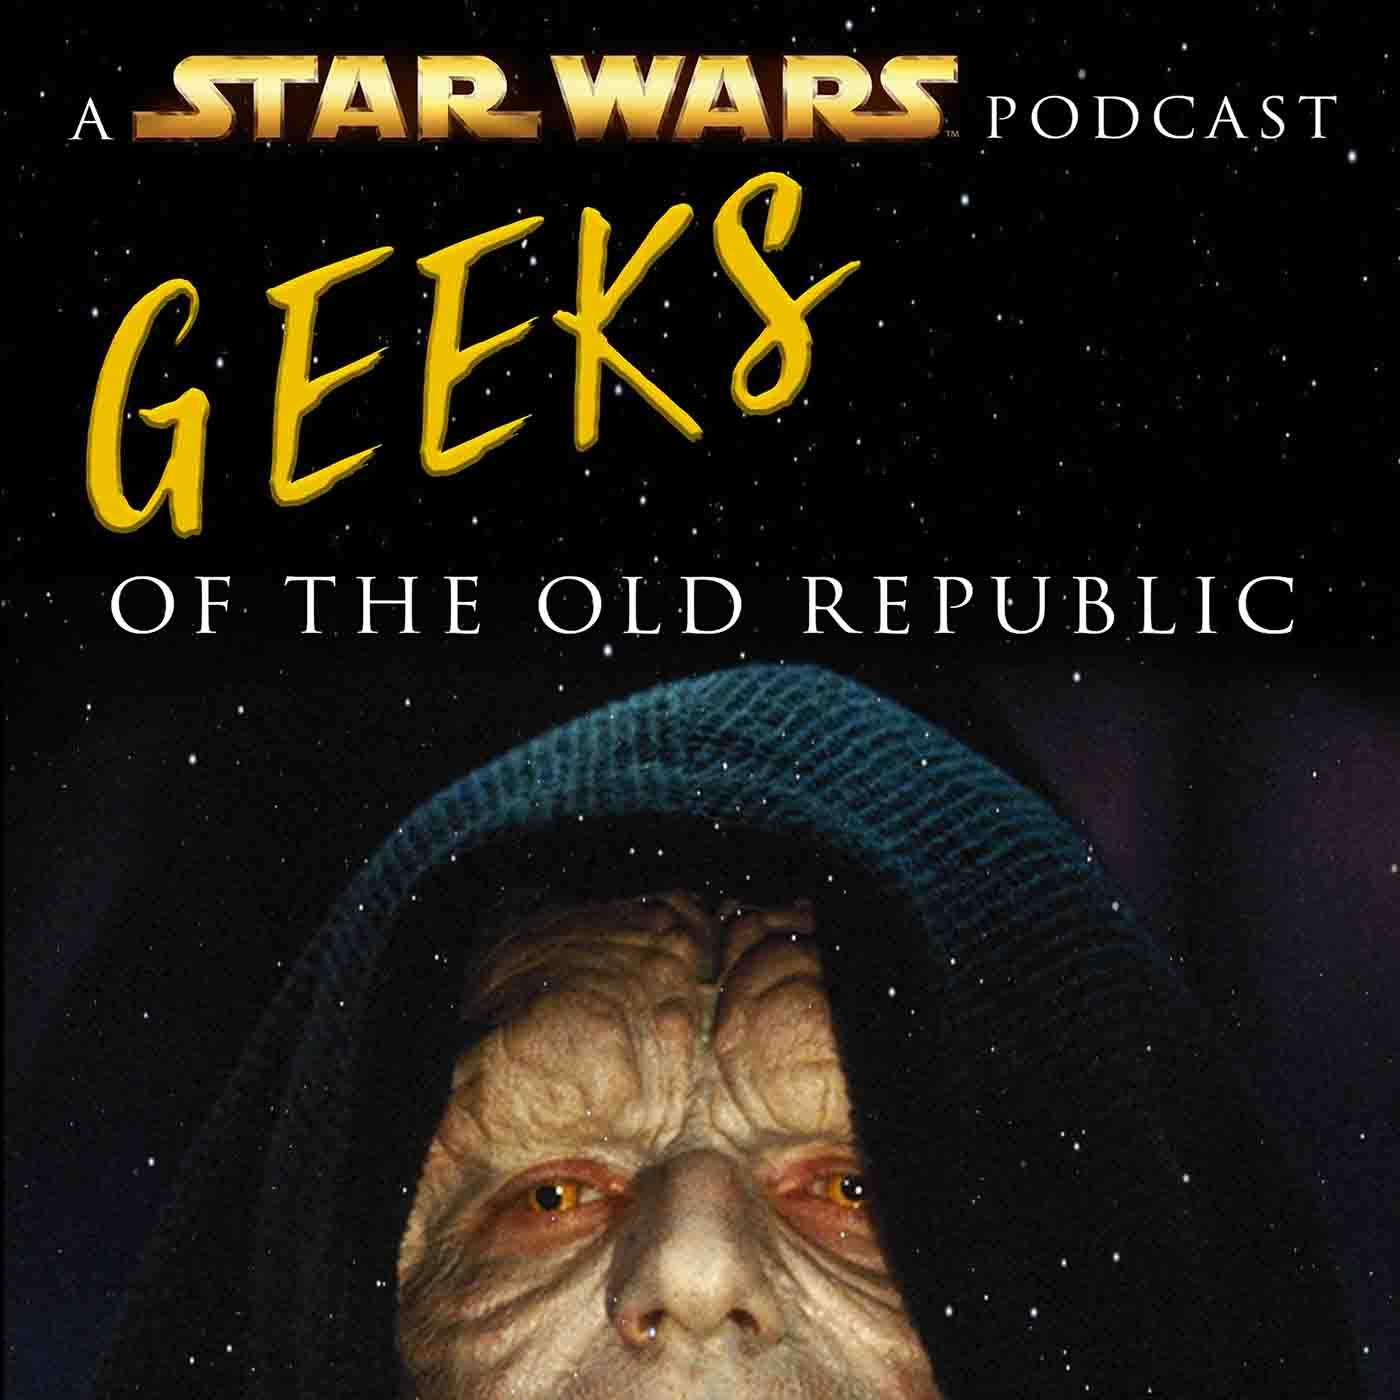 Geeks Of The Old Republic